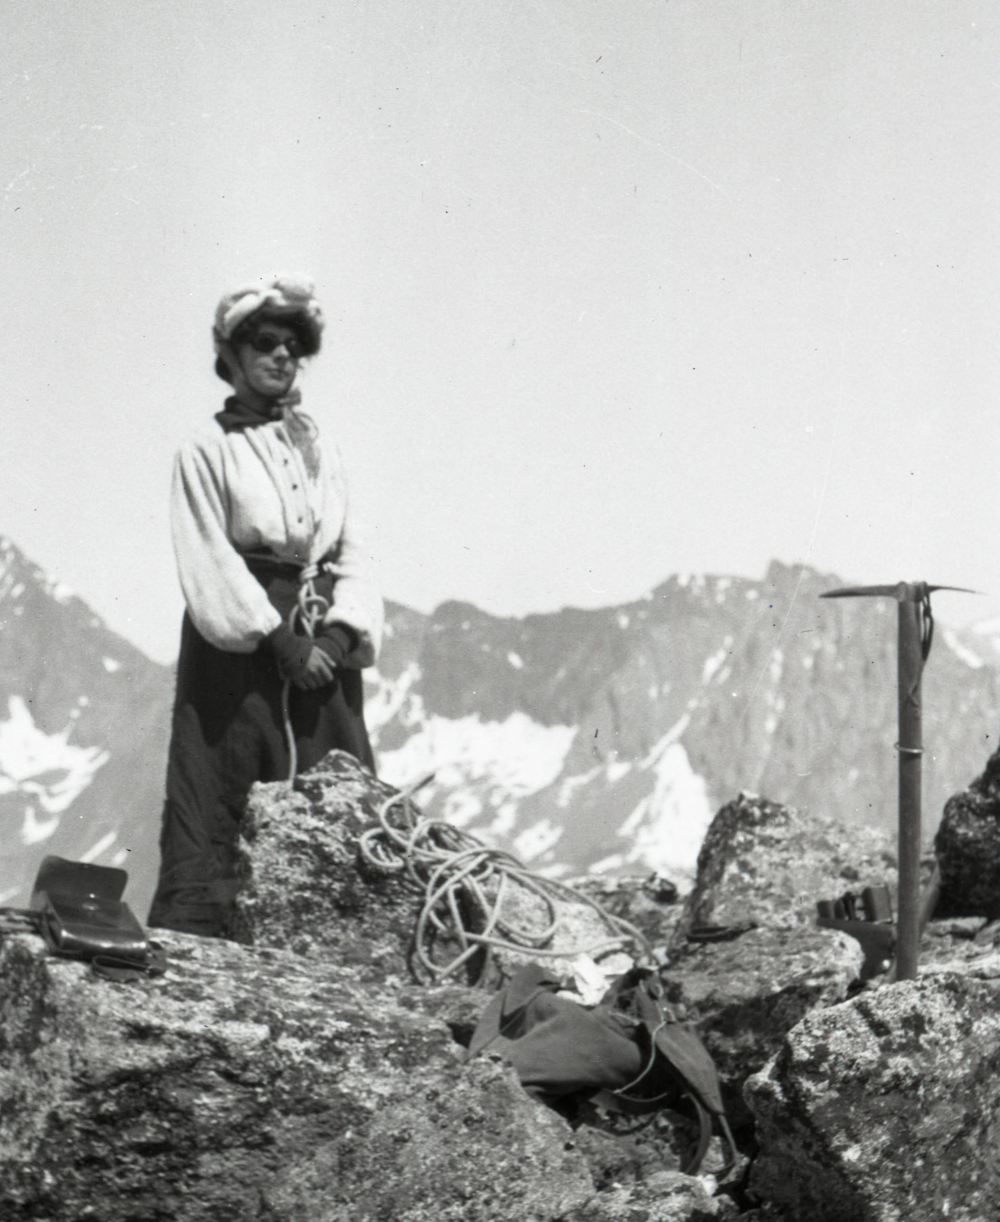 Photo credit: American Alpine Club Library.  From our Andrew J. Gilmour collection, taken in the Alps around 1910. A woman in a long coat and glacier goggles stands in front of a narrow rock prominence. She is holding an ice axe and is part of a rope team, roped to other mountaineers.